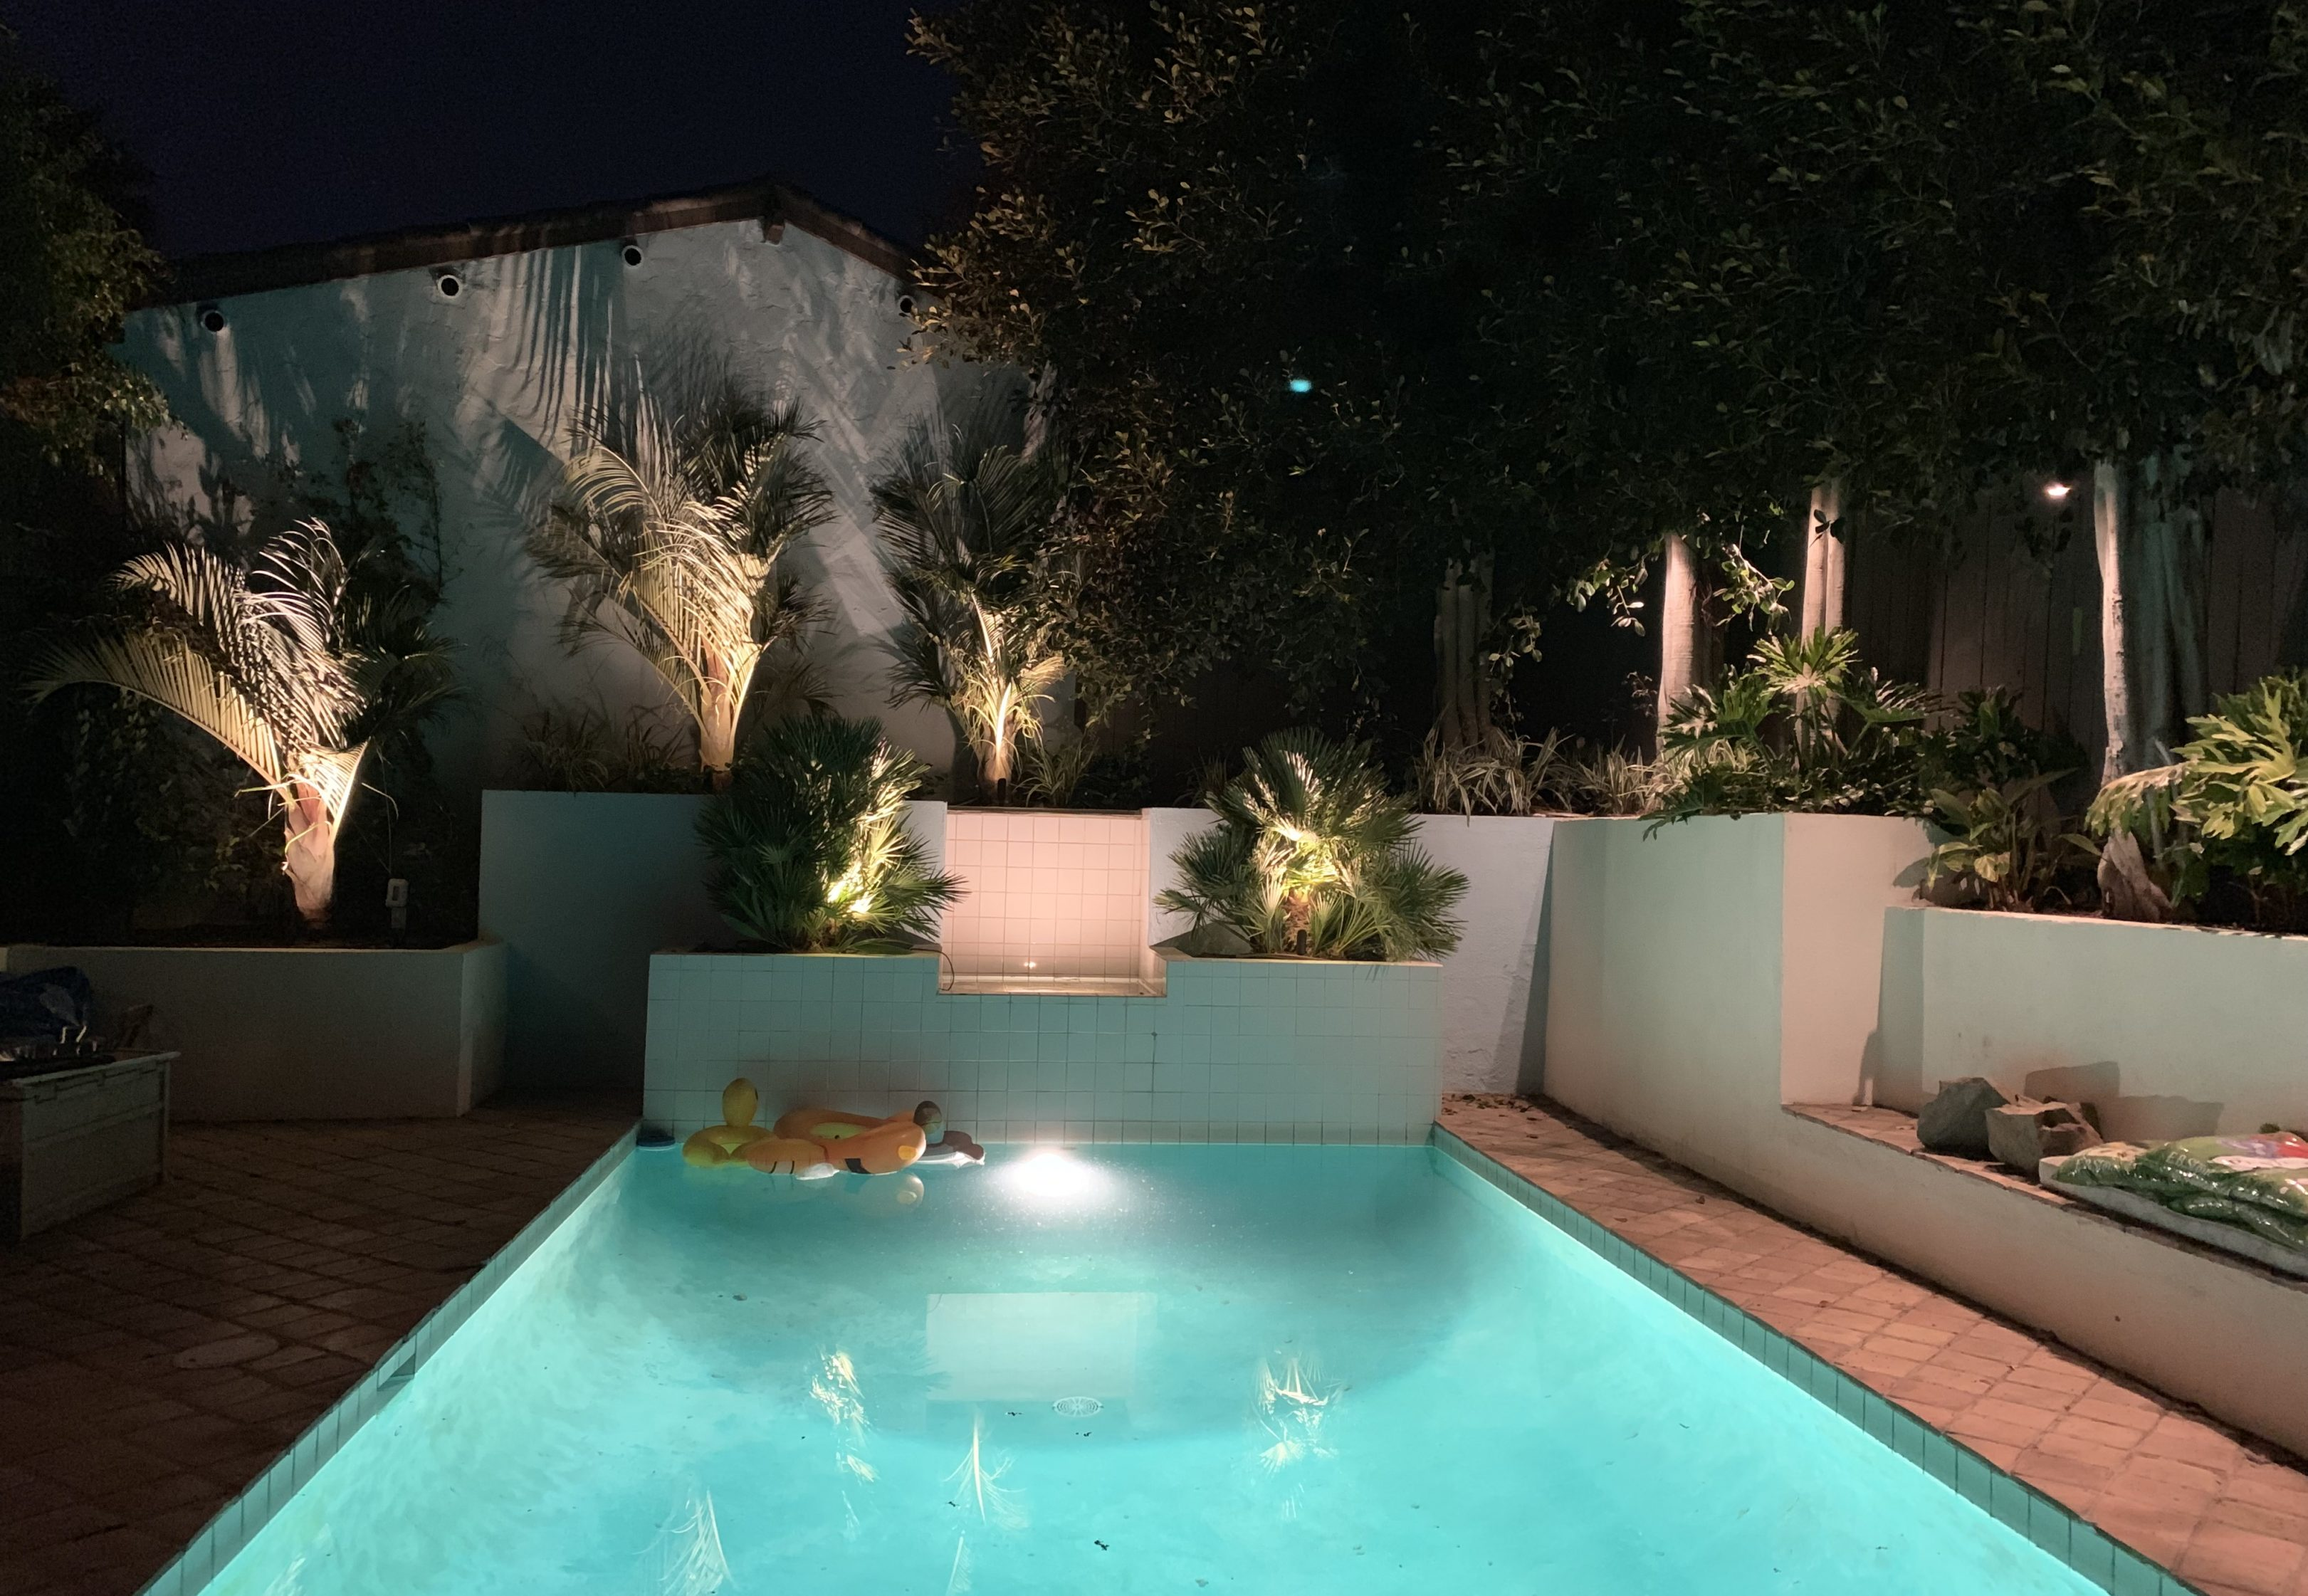 Pool and Fountain at Night